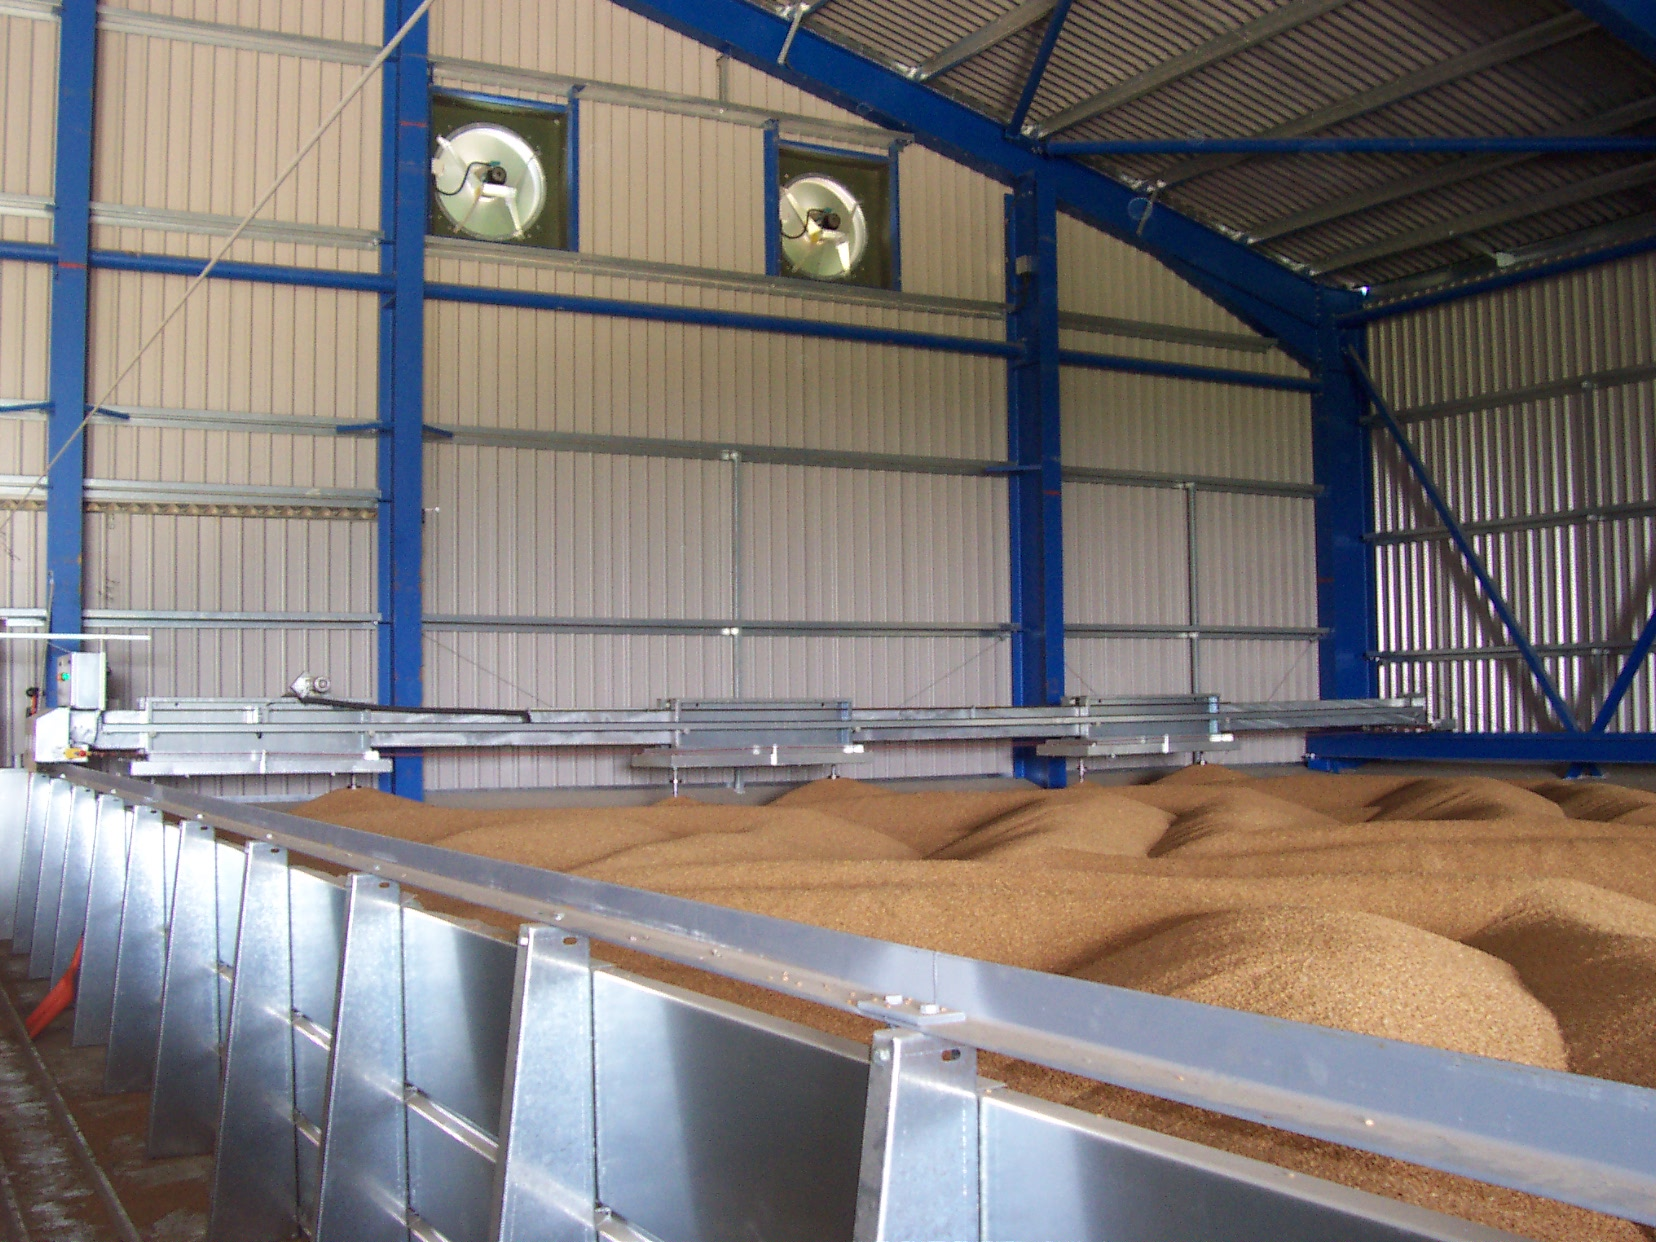 On floor stirrer grain store showing exhaust fans